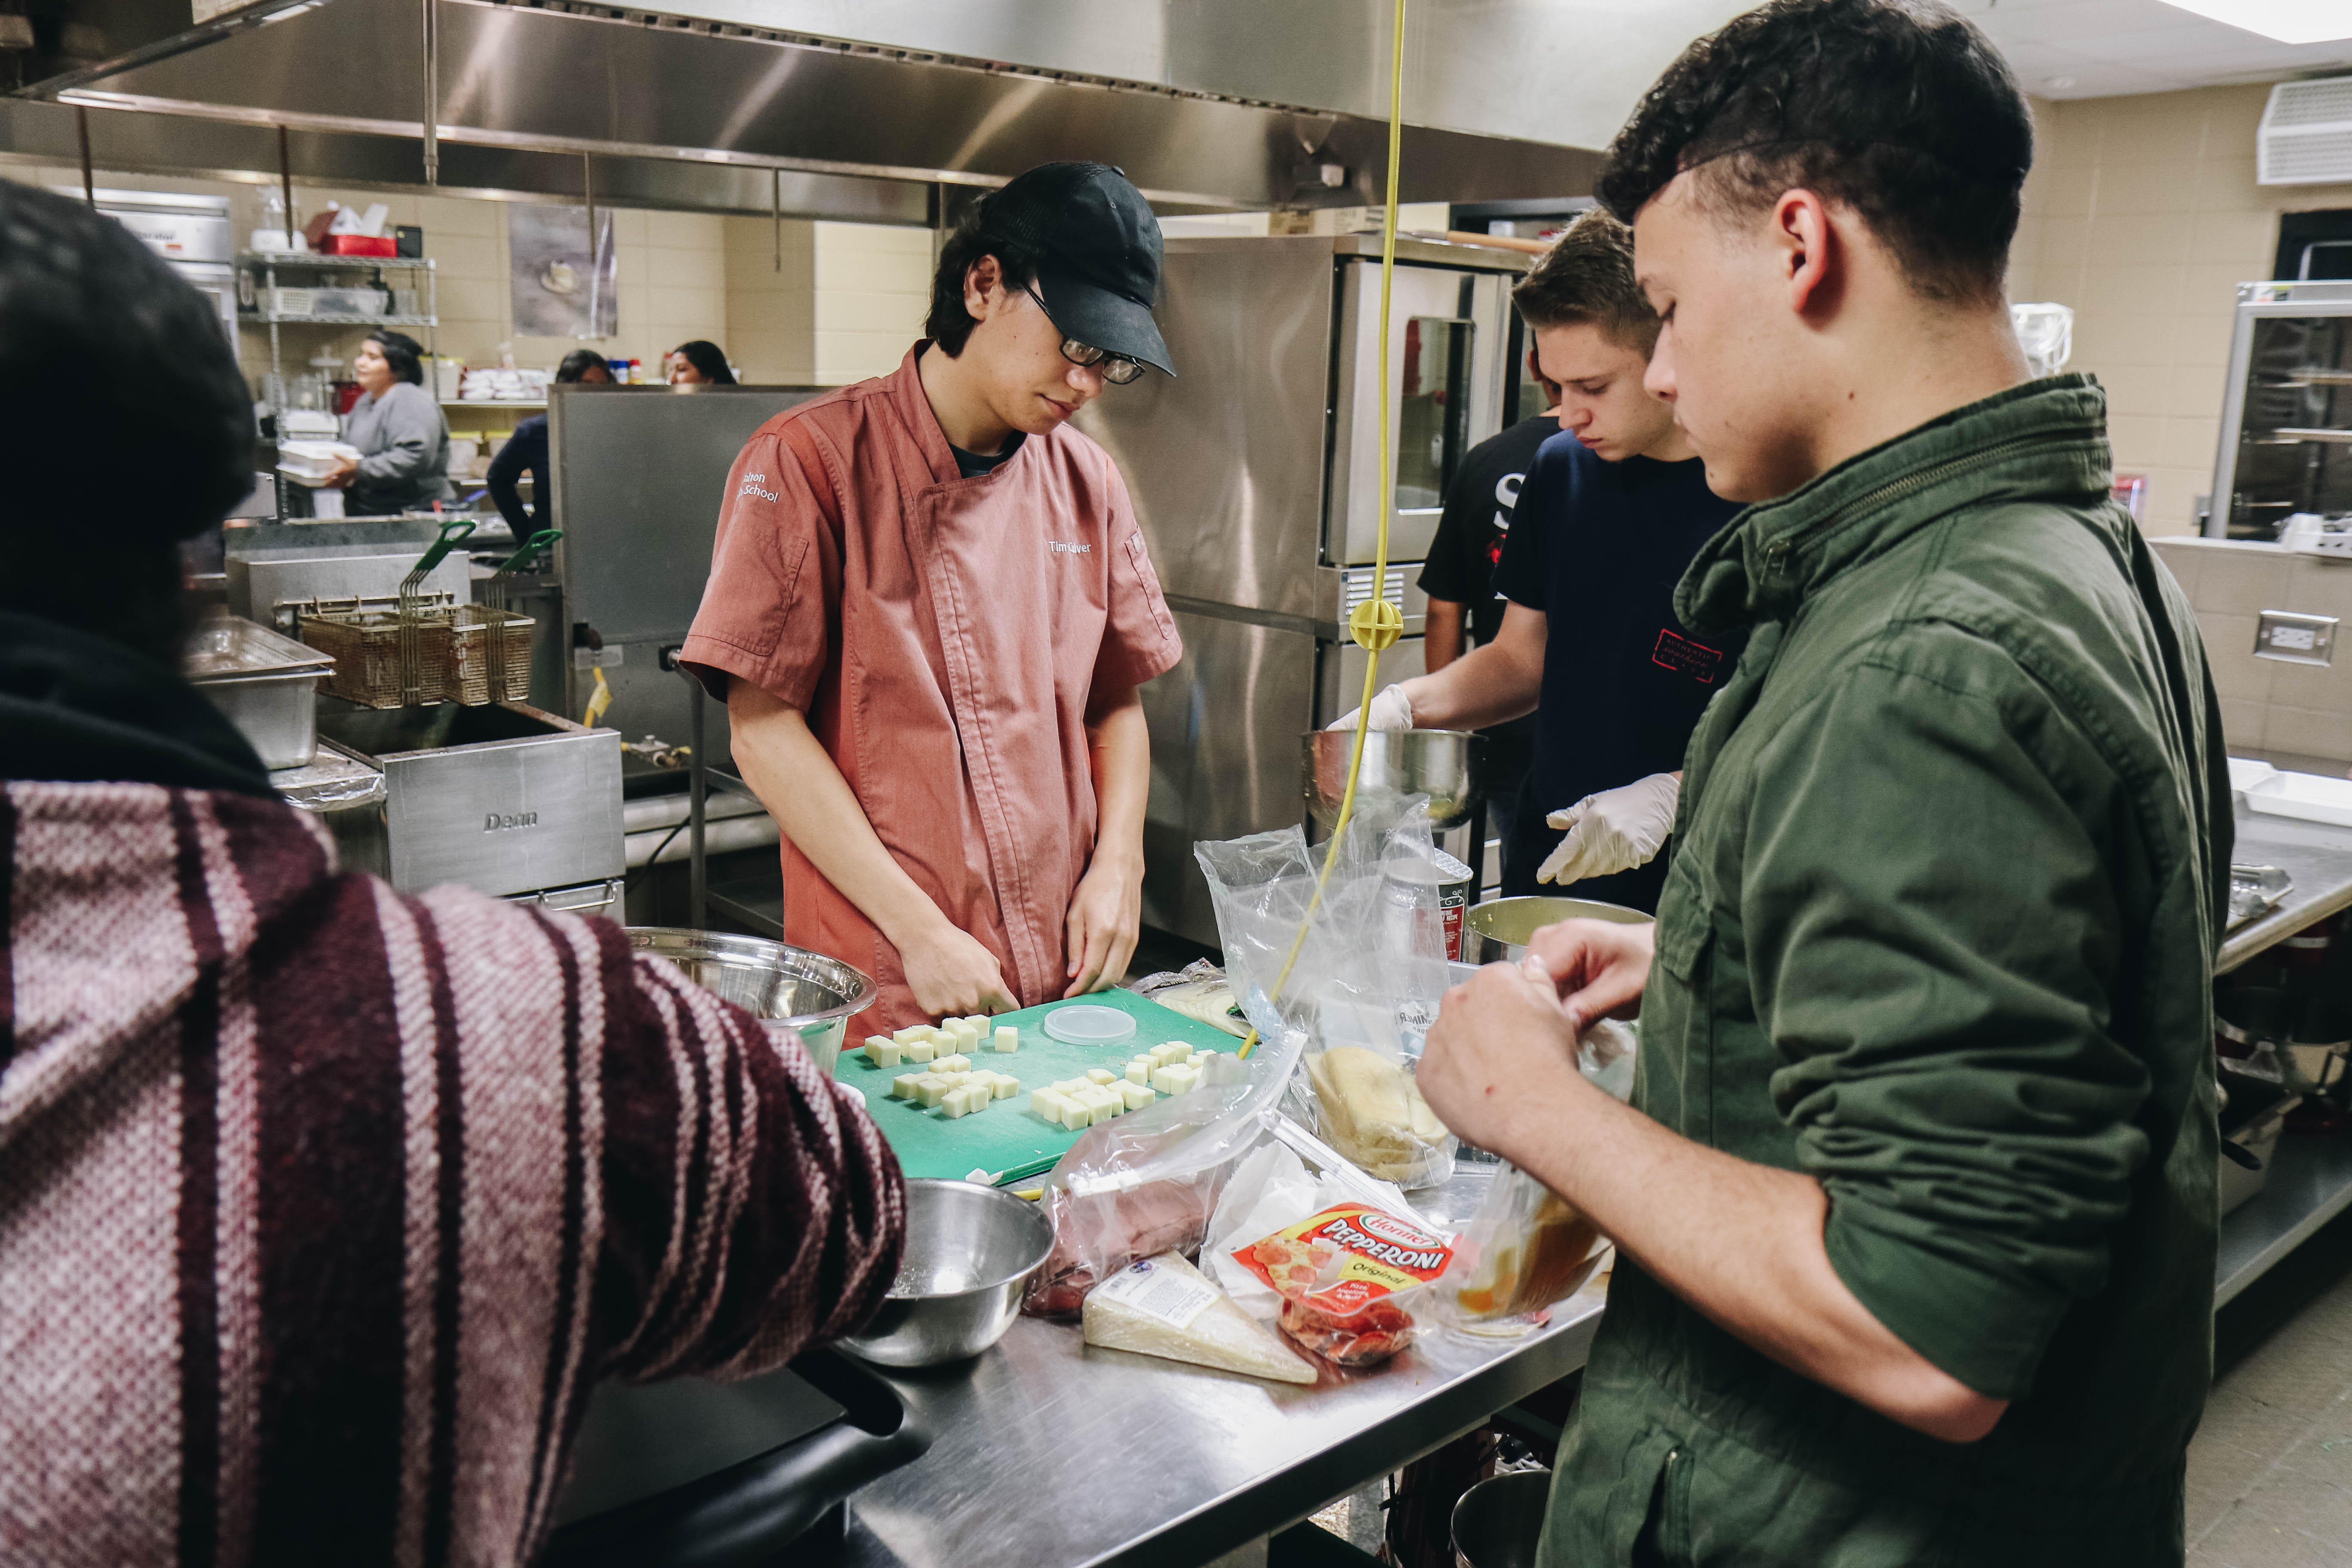 Several students working in kitchen